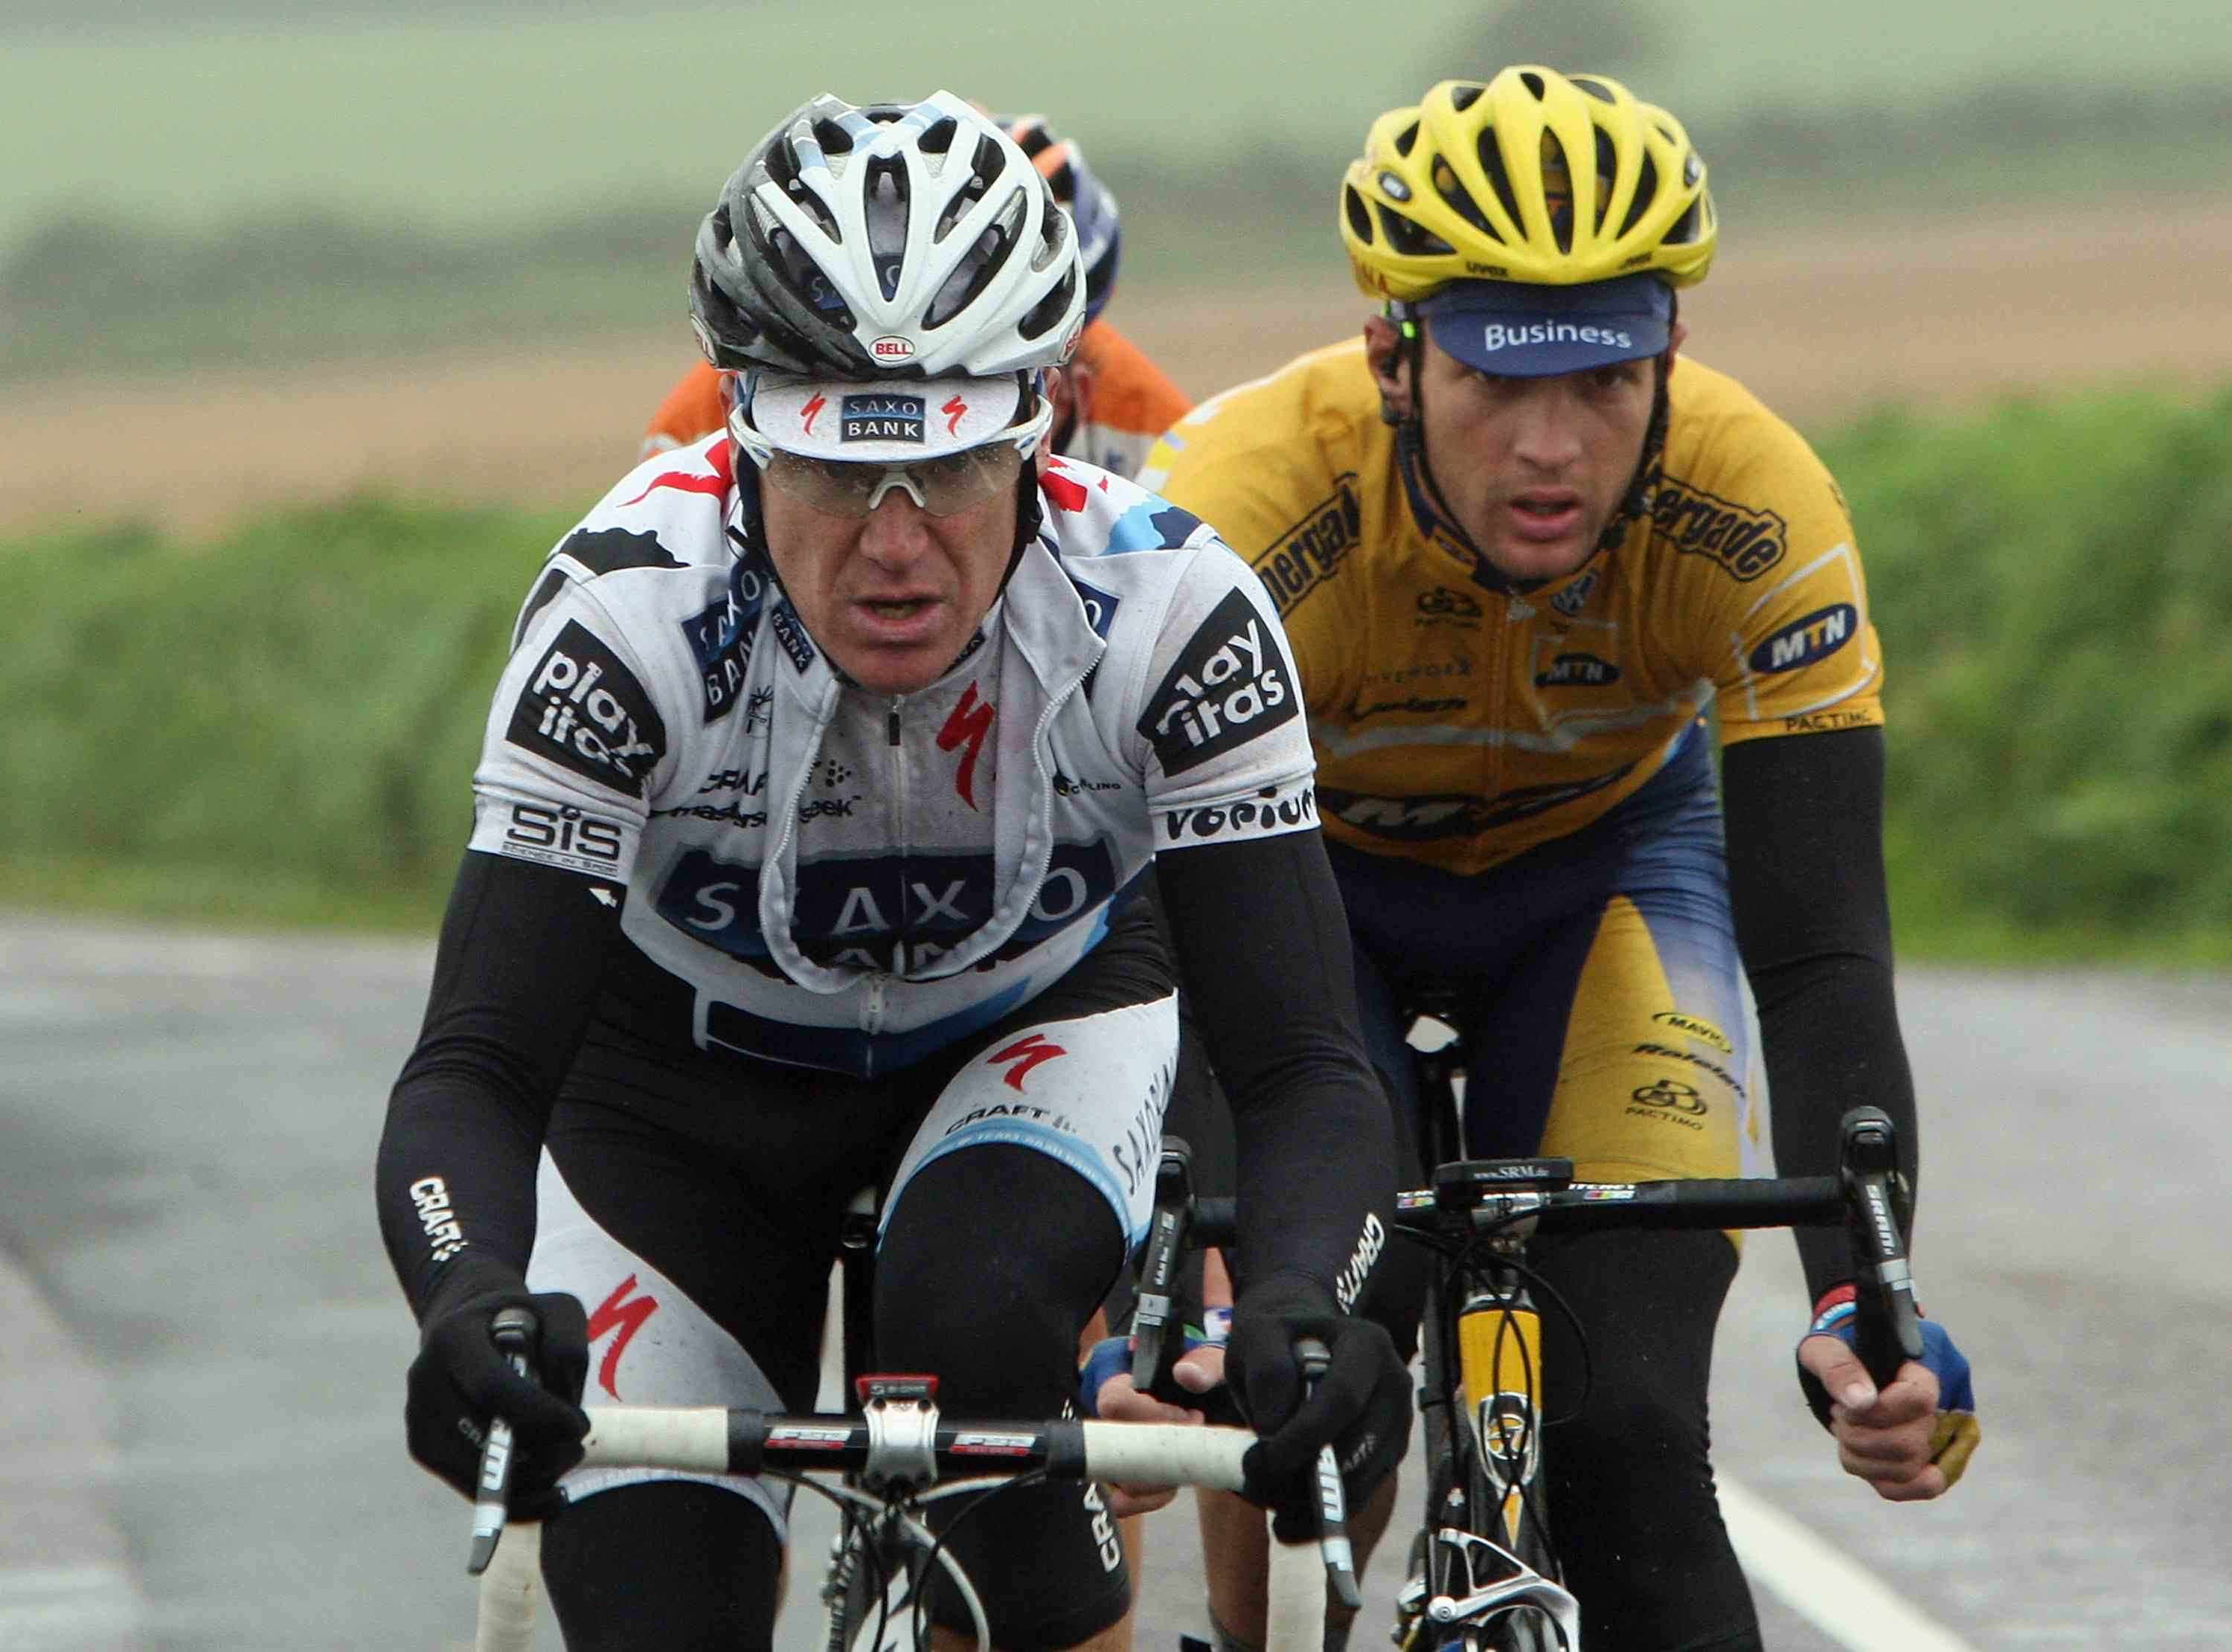 Stuart O'Grady of Australia and Saxo Bank (L) leads the breakaway group through the rain during Stage Three of the 2009 Tour of Ireland from Bantry to Cork on August 23, 2009 in Cork, Ireland.